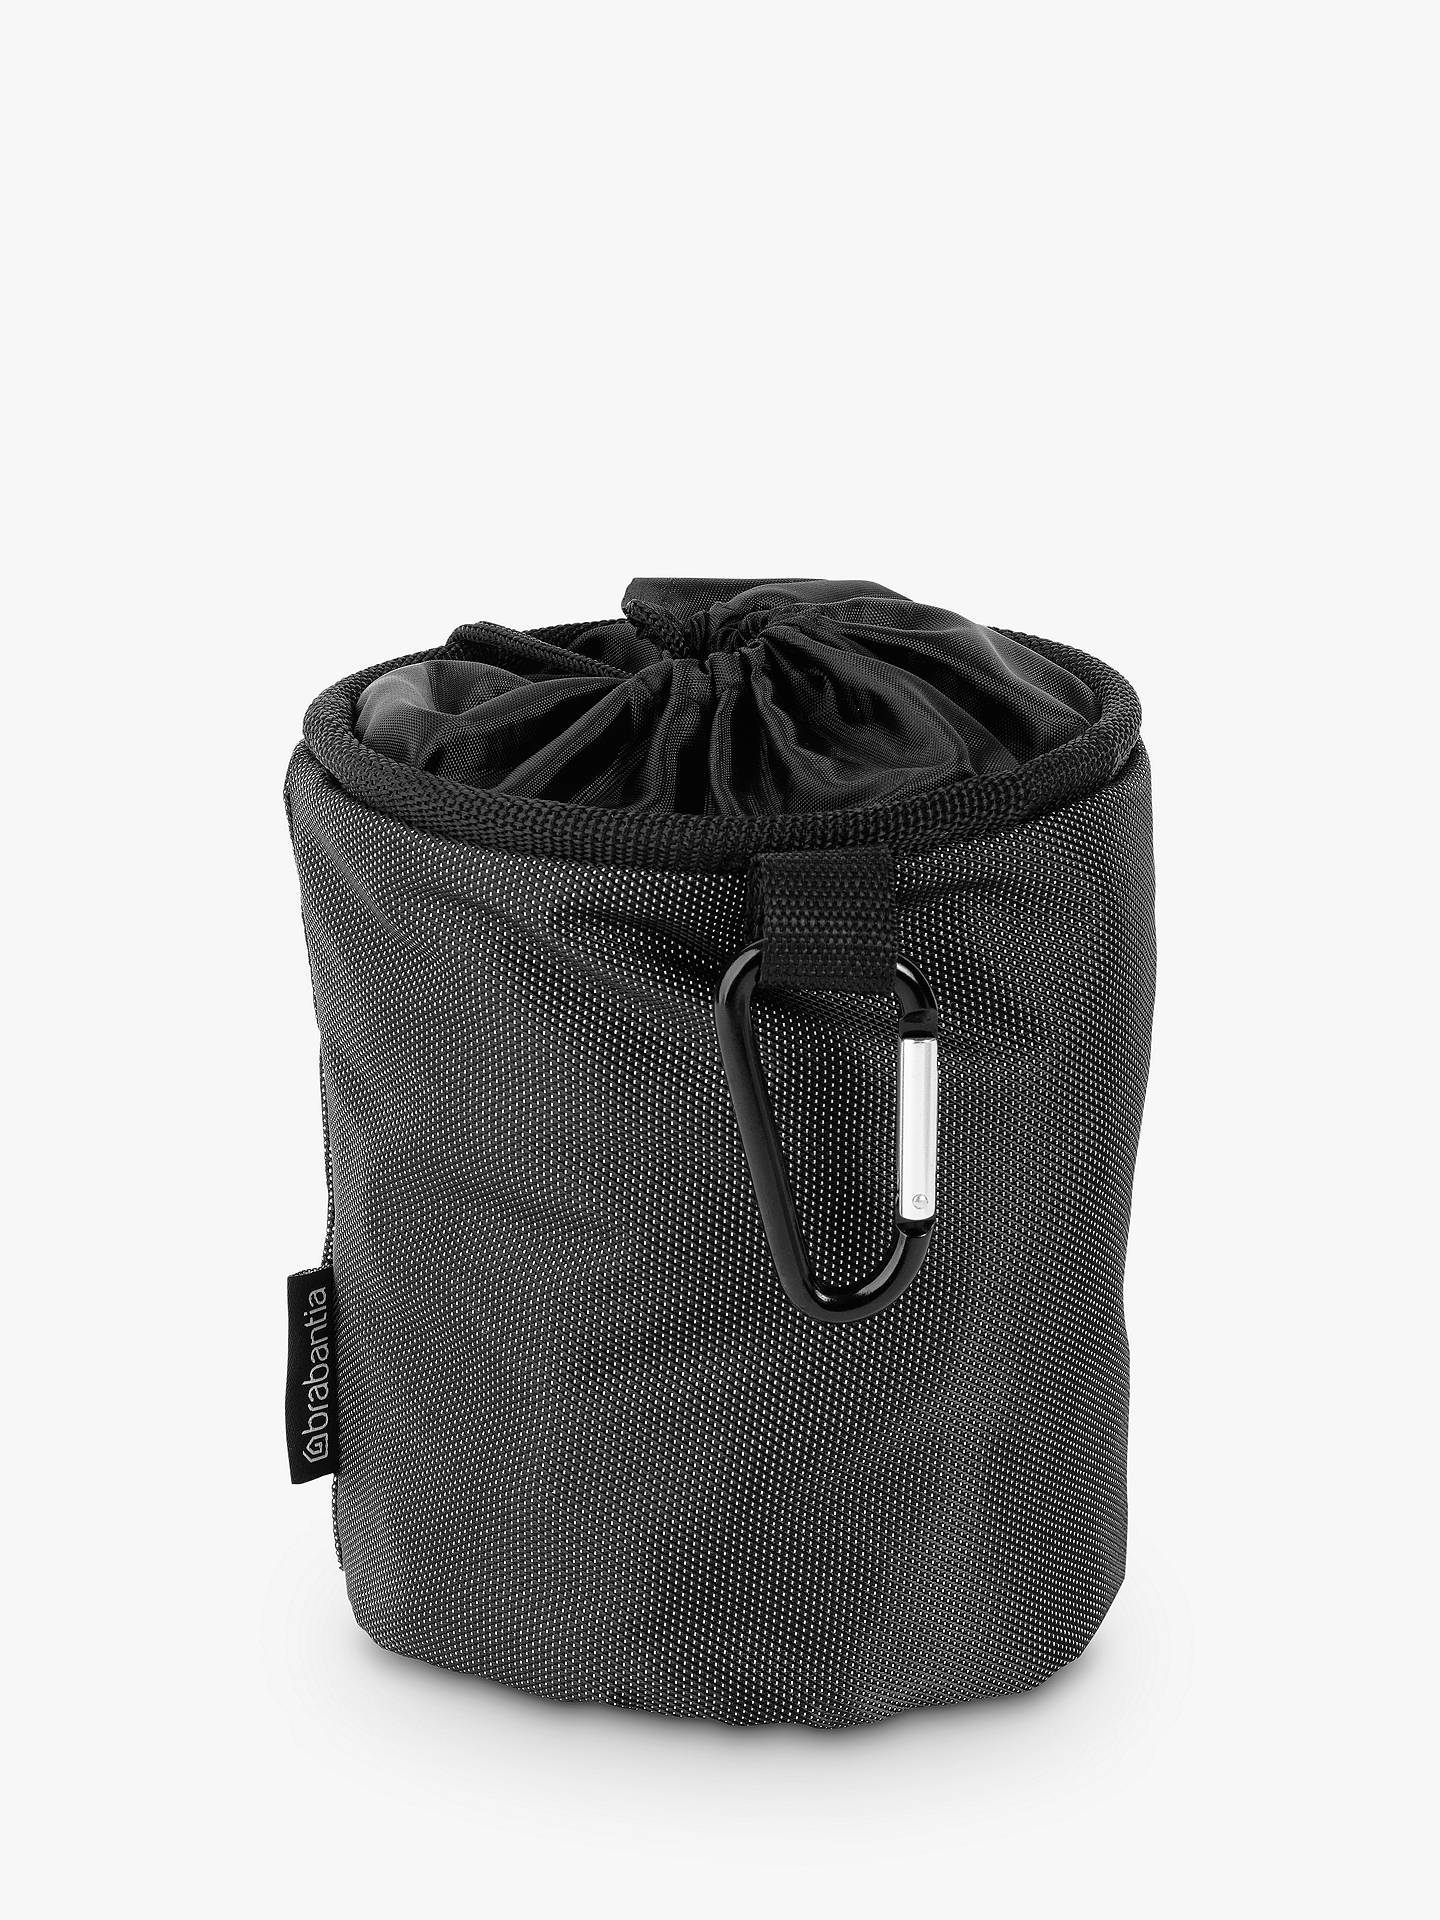 Buy Brabantia Premium Drawstring Peg Bag Online at johnlewis.com